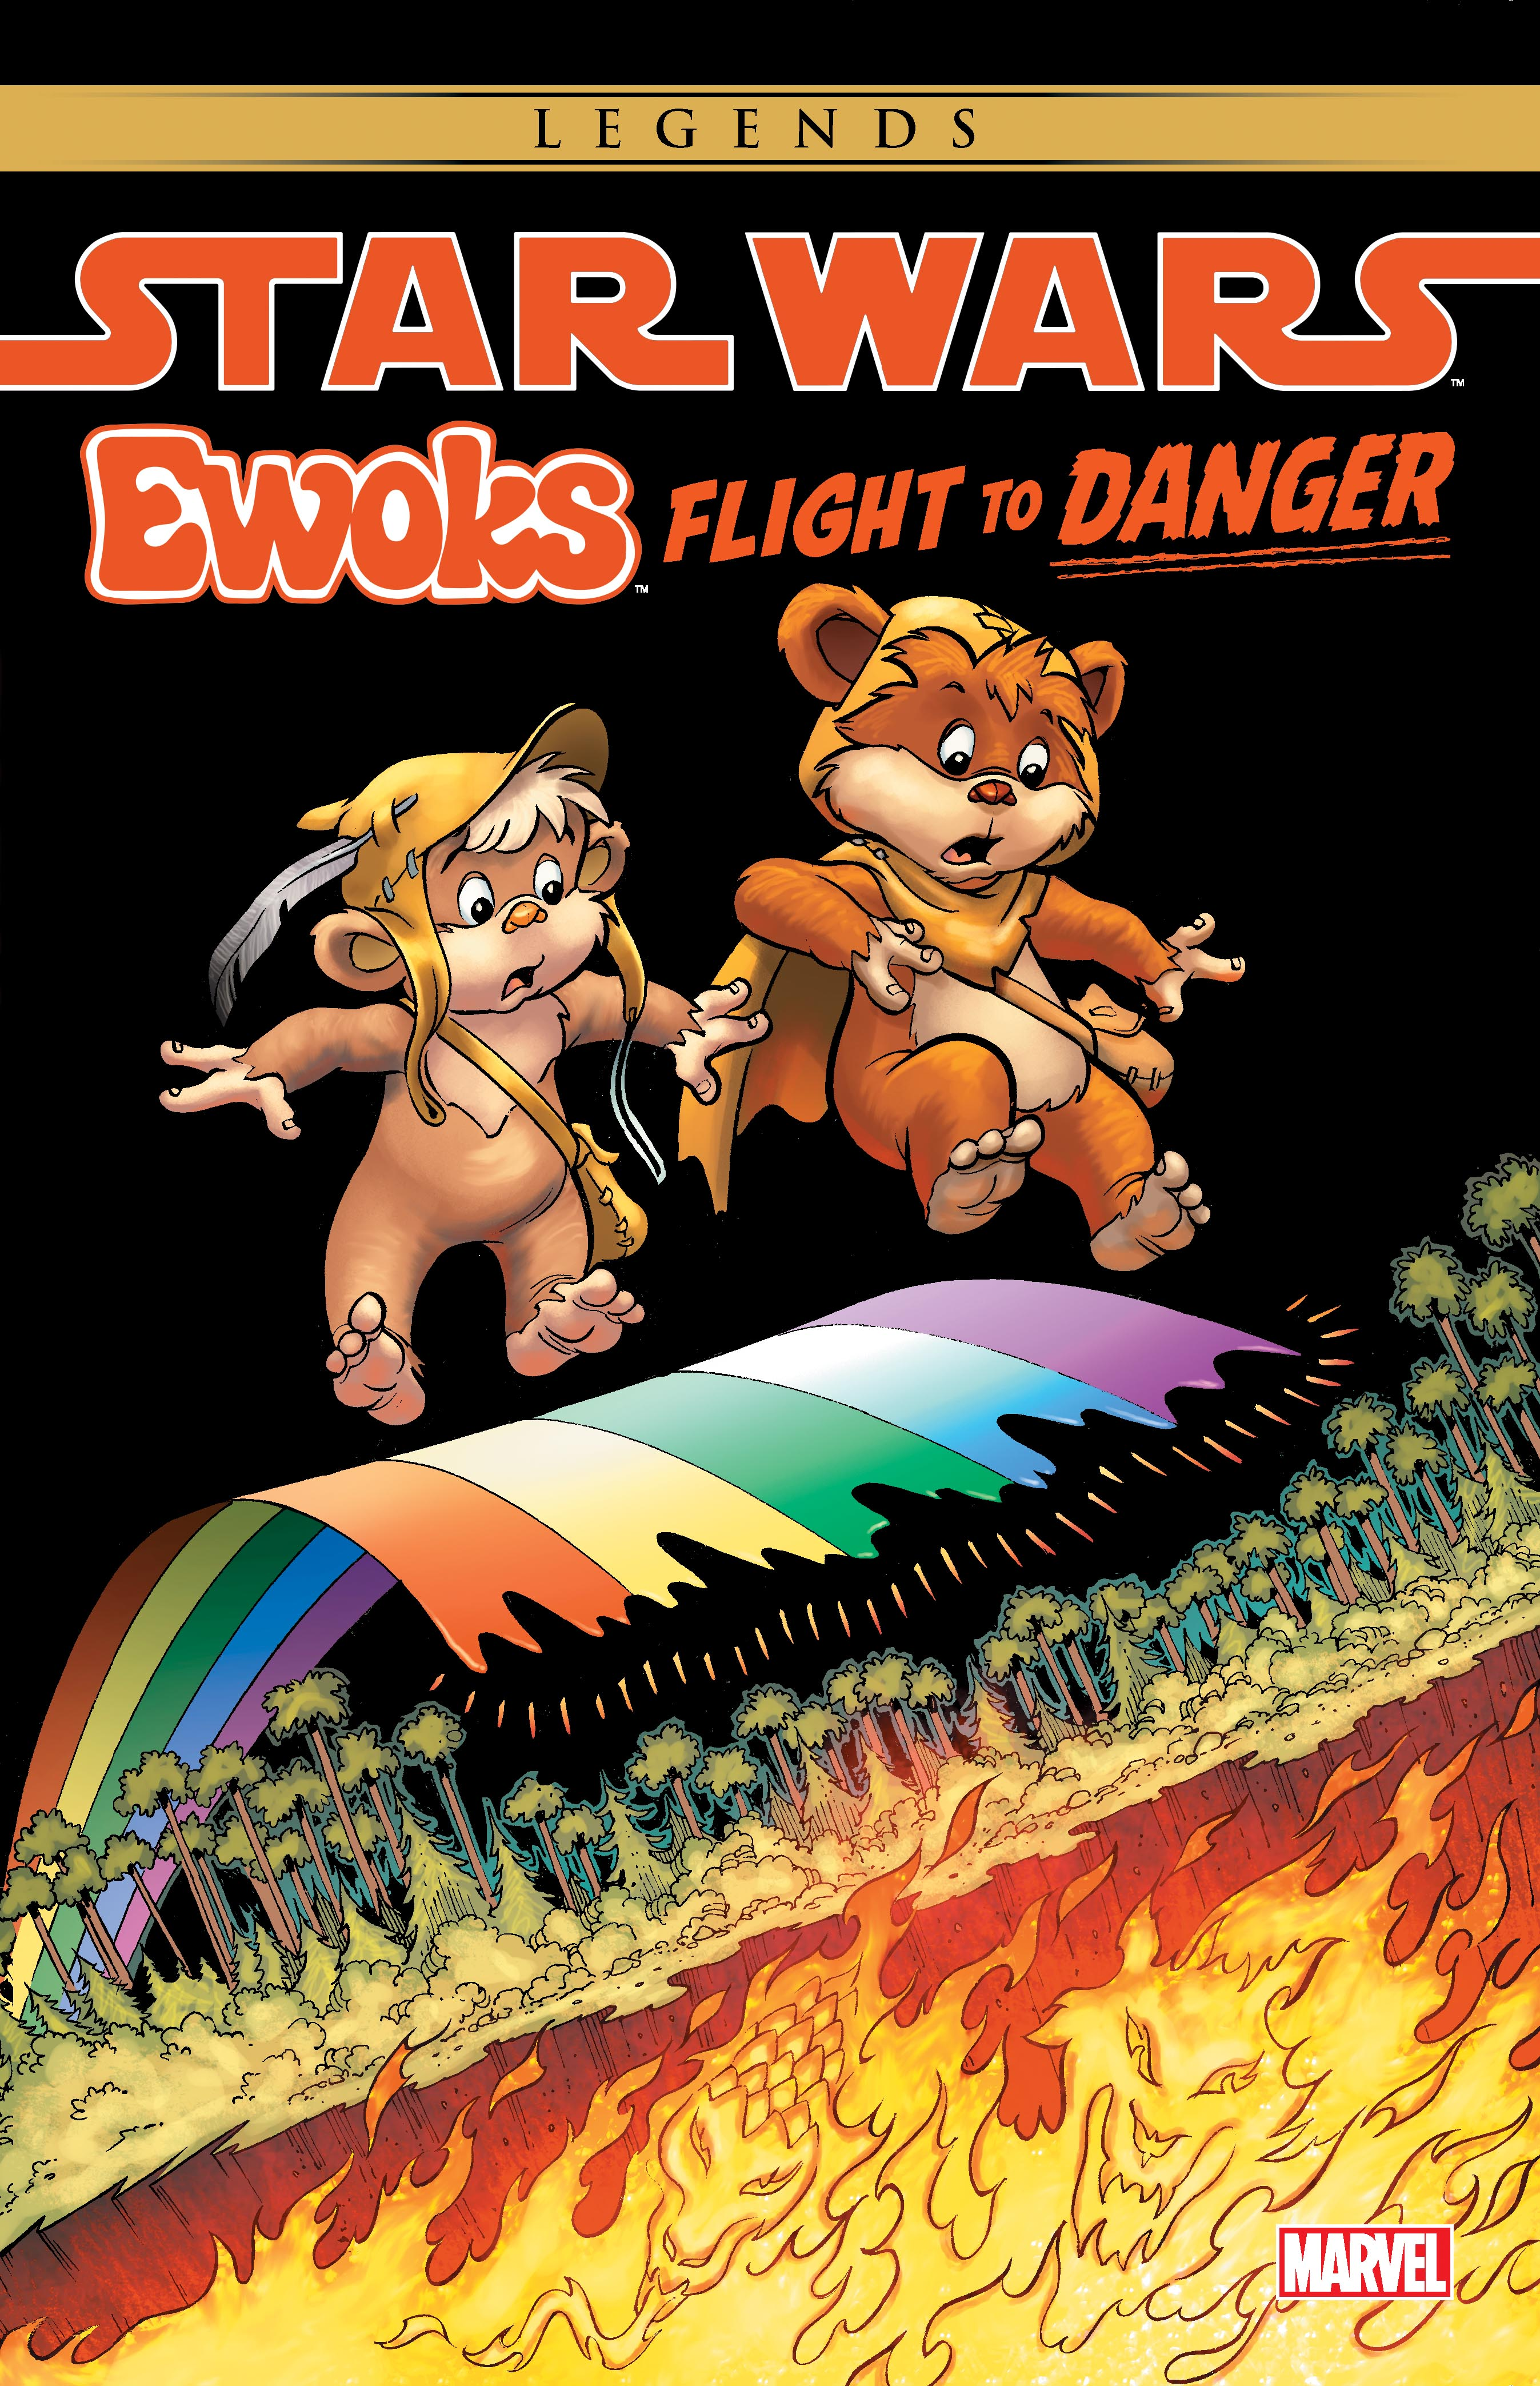 Star Wars: Ewoks - Flight To Danger (Trade Paperback)